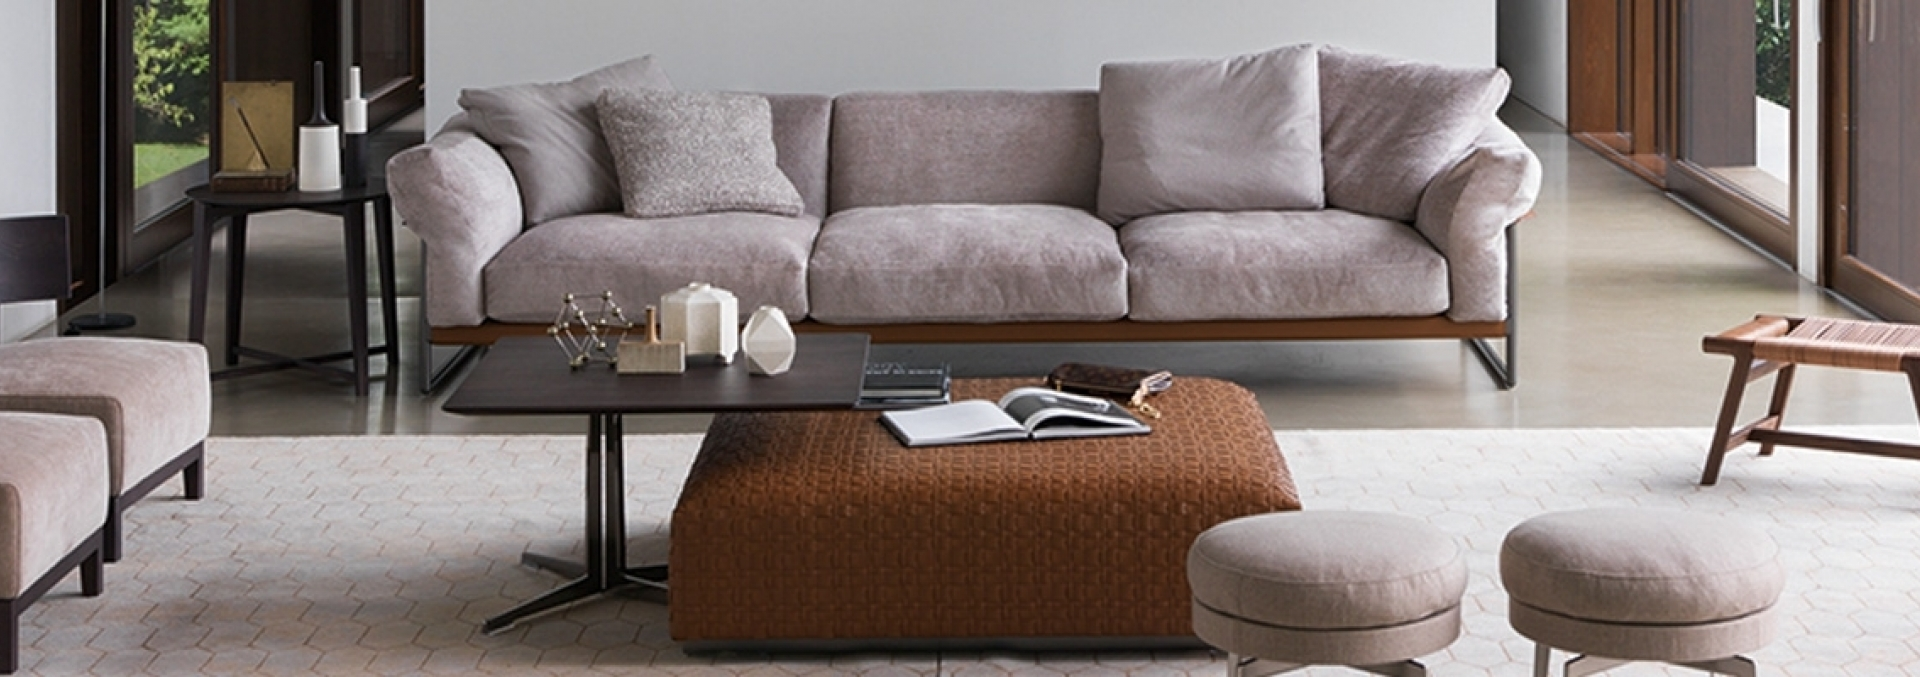 Divano Letto Moderno Flexform.Modern Sofas Upholstered With Washable Fabric